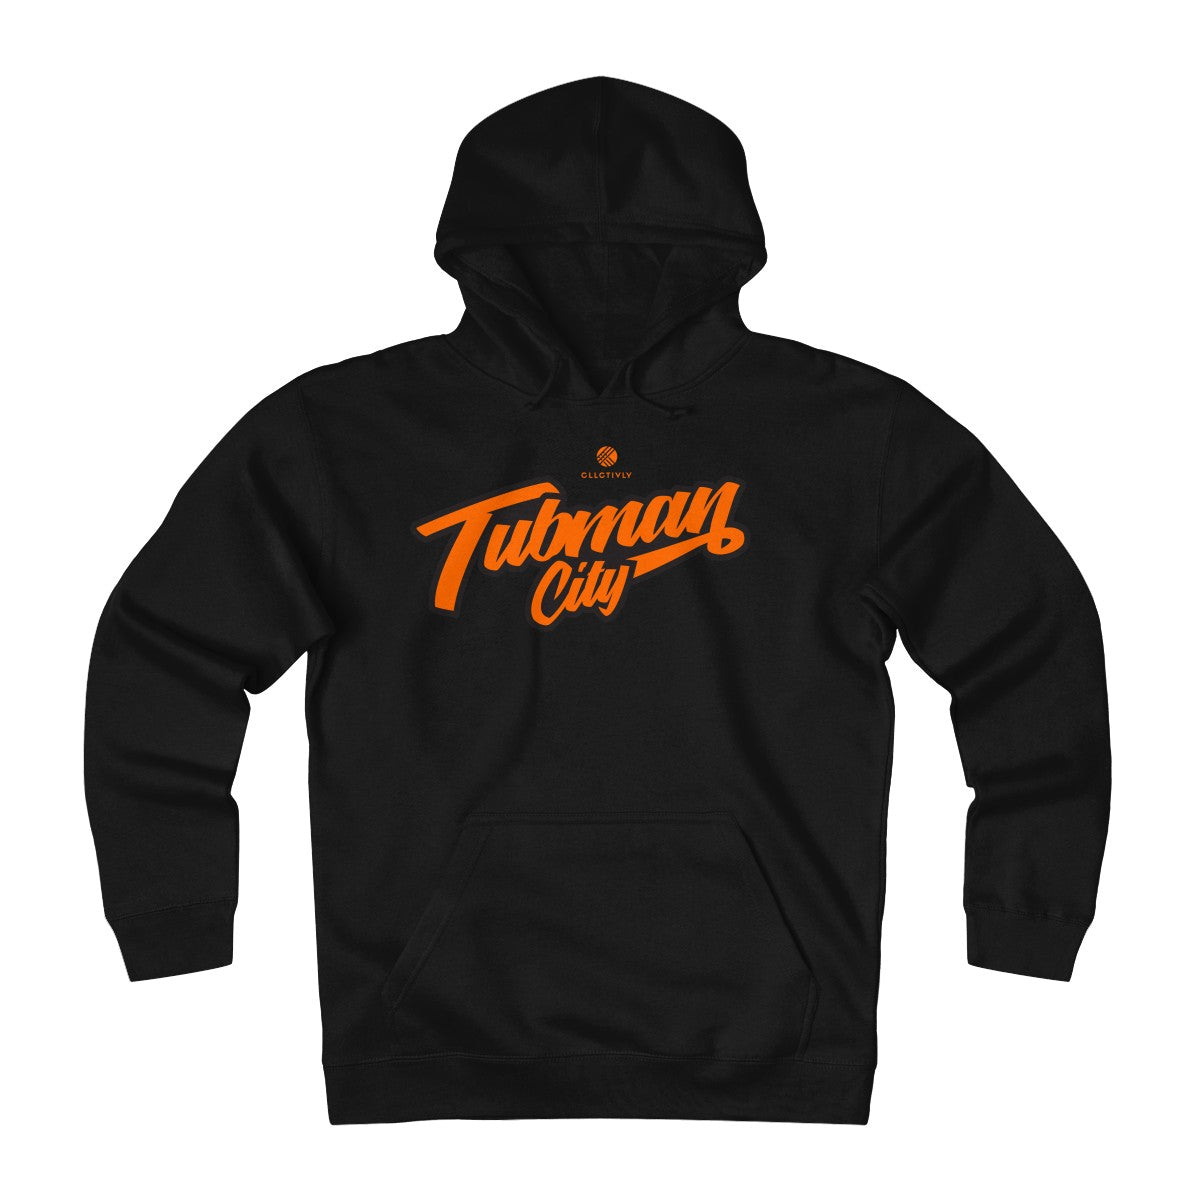 Tubman City - Unisex Heavyweight Fleece Hoodie